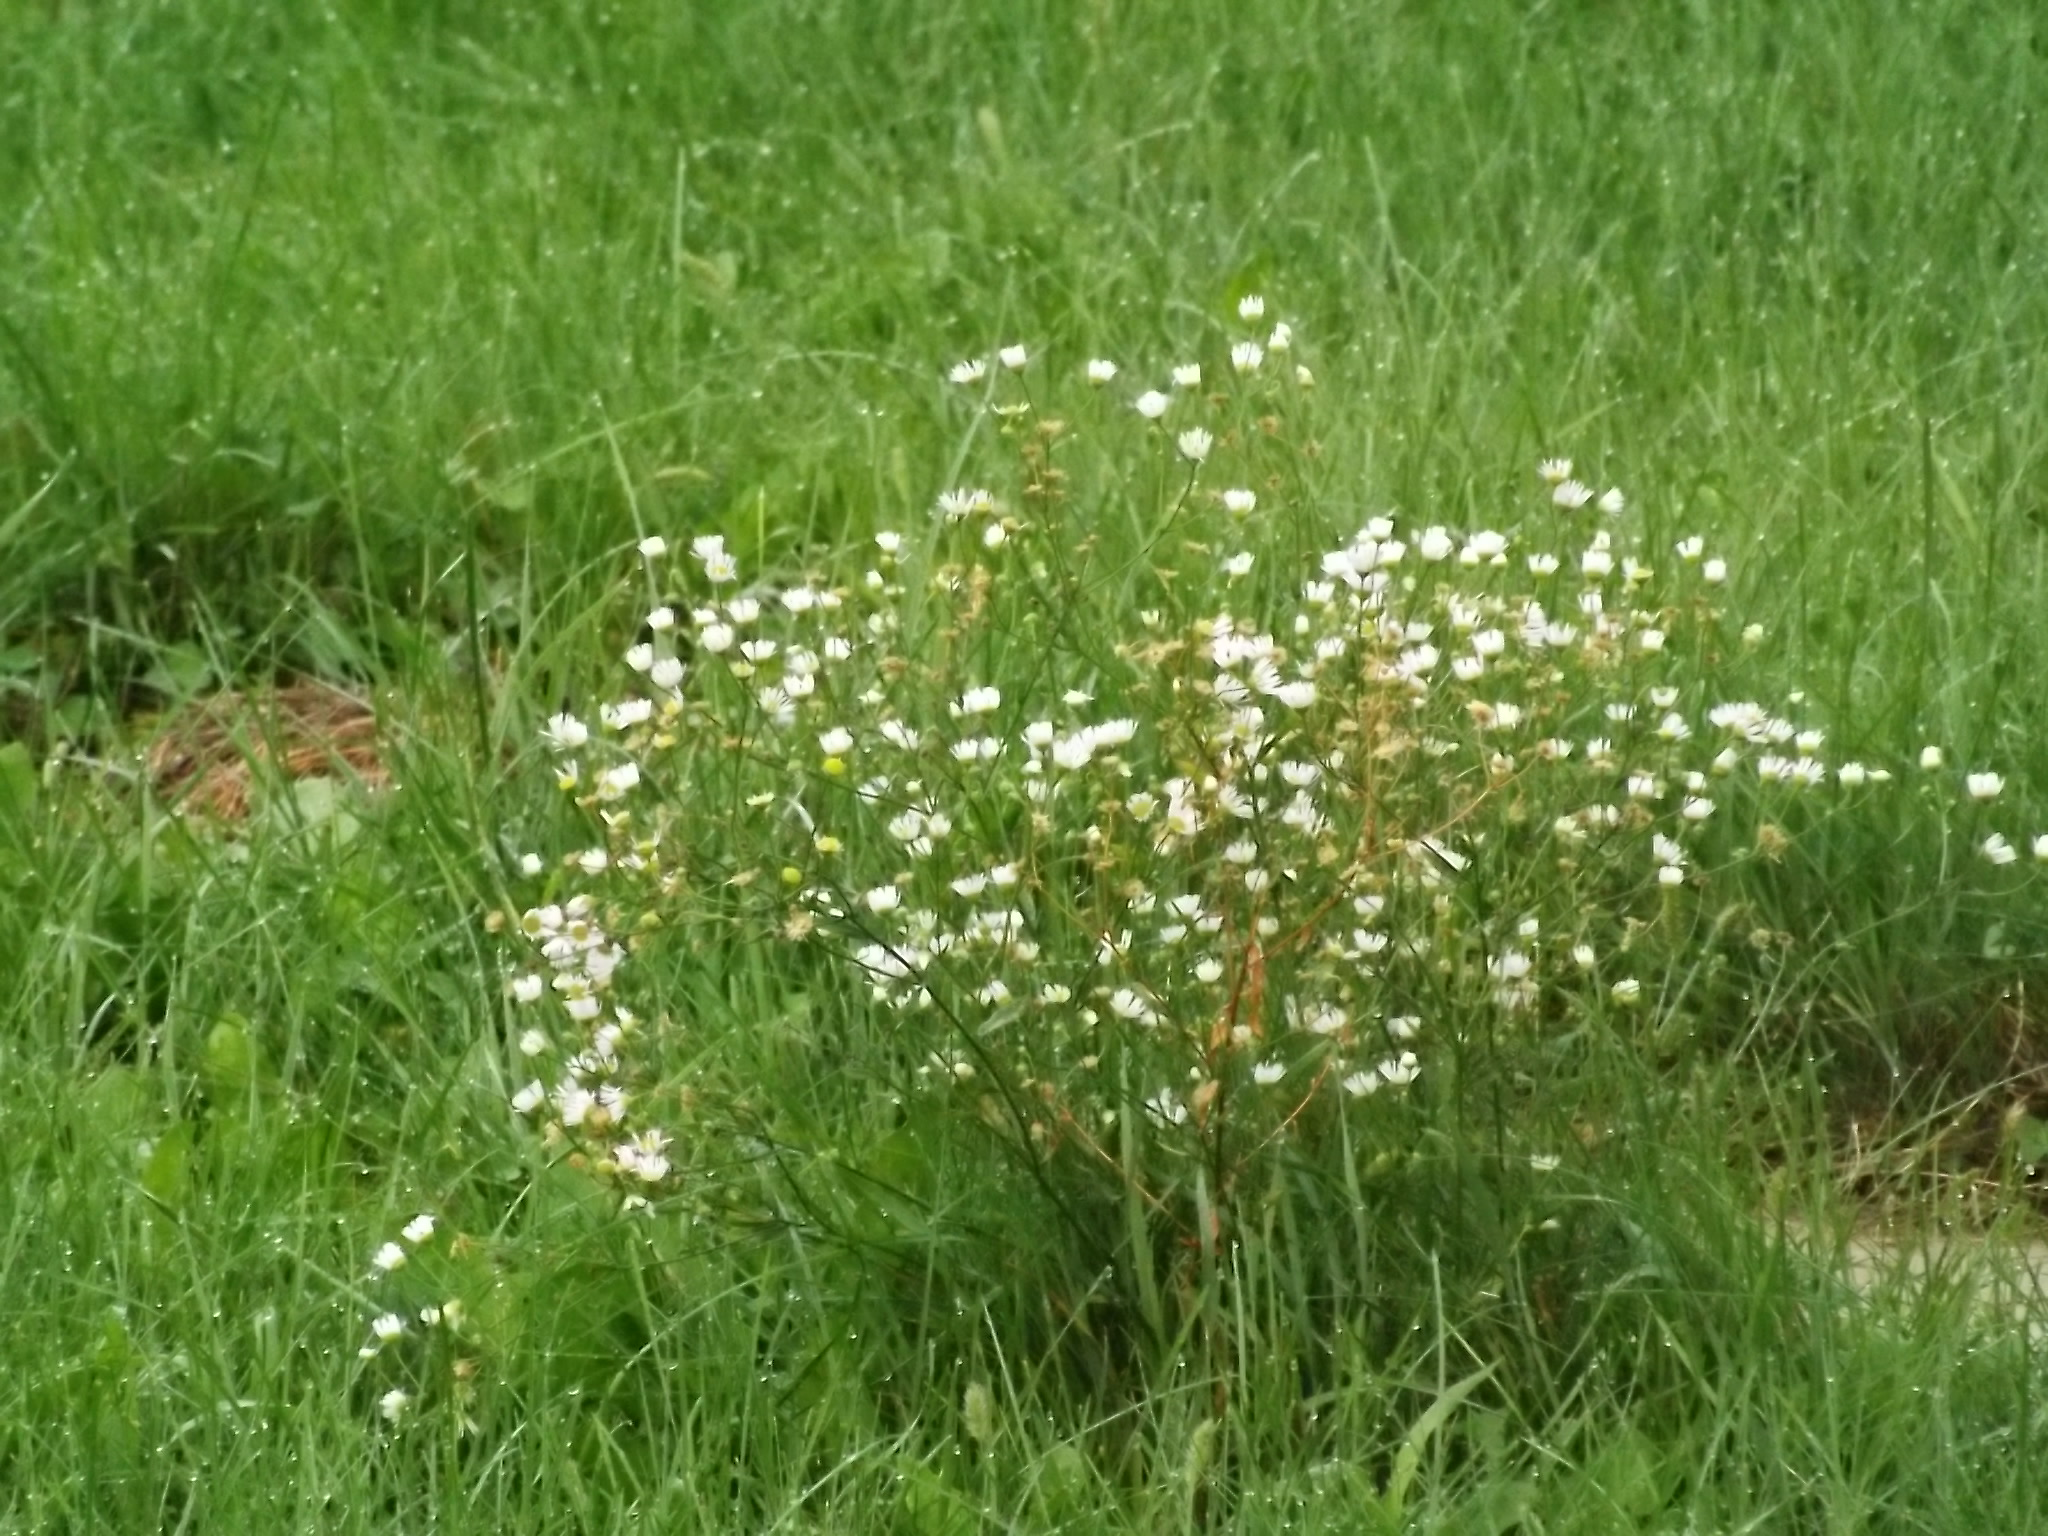 clump of wild flowers, small white flowers, left standing as the lawn was mowed around them